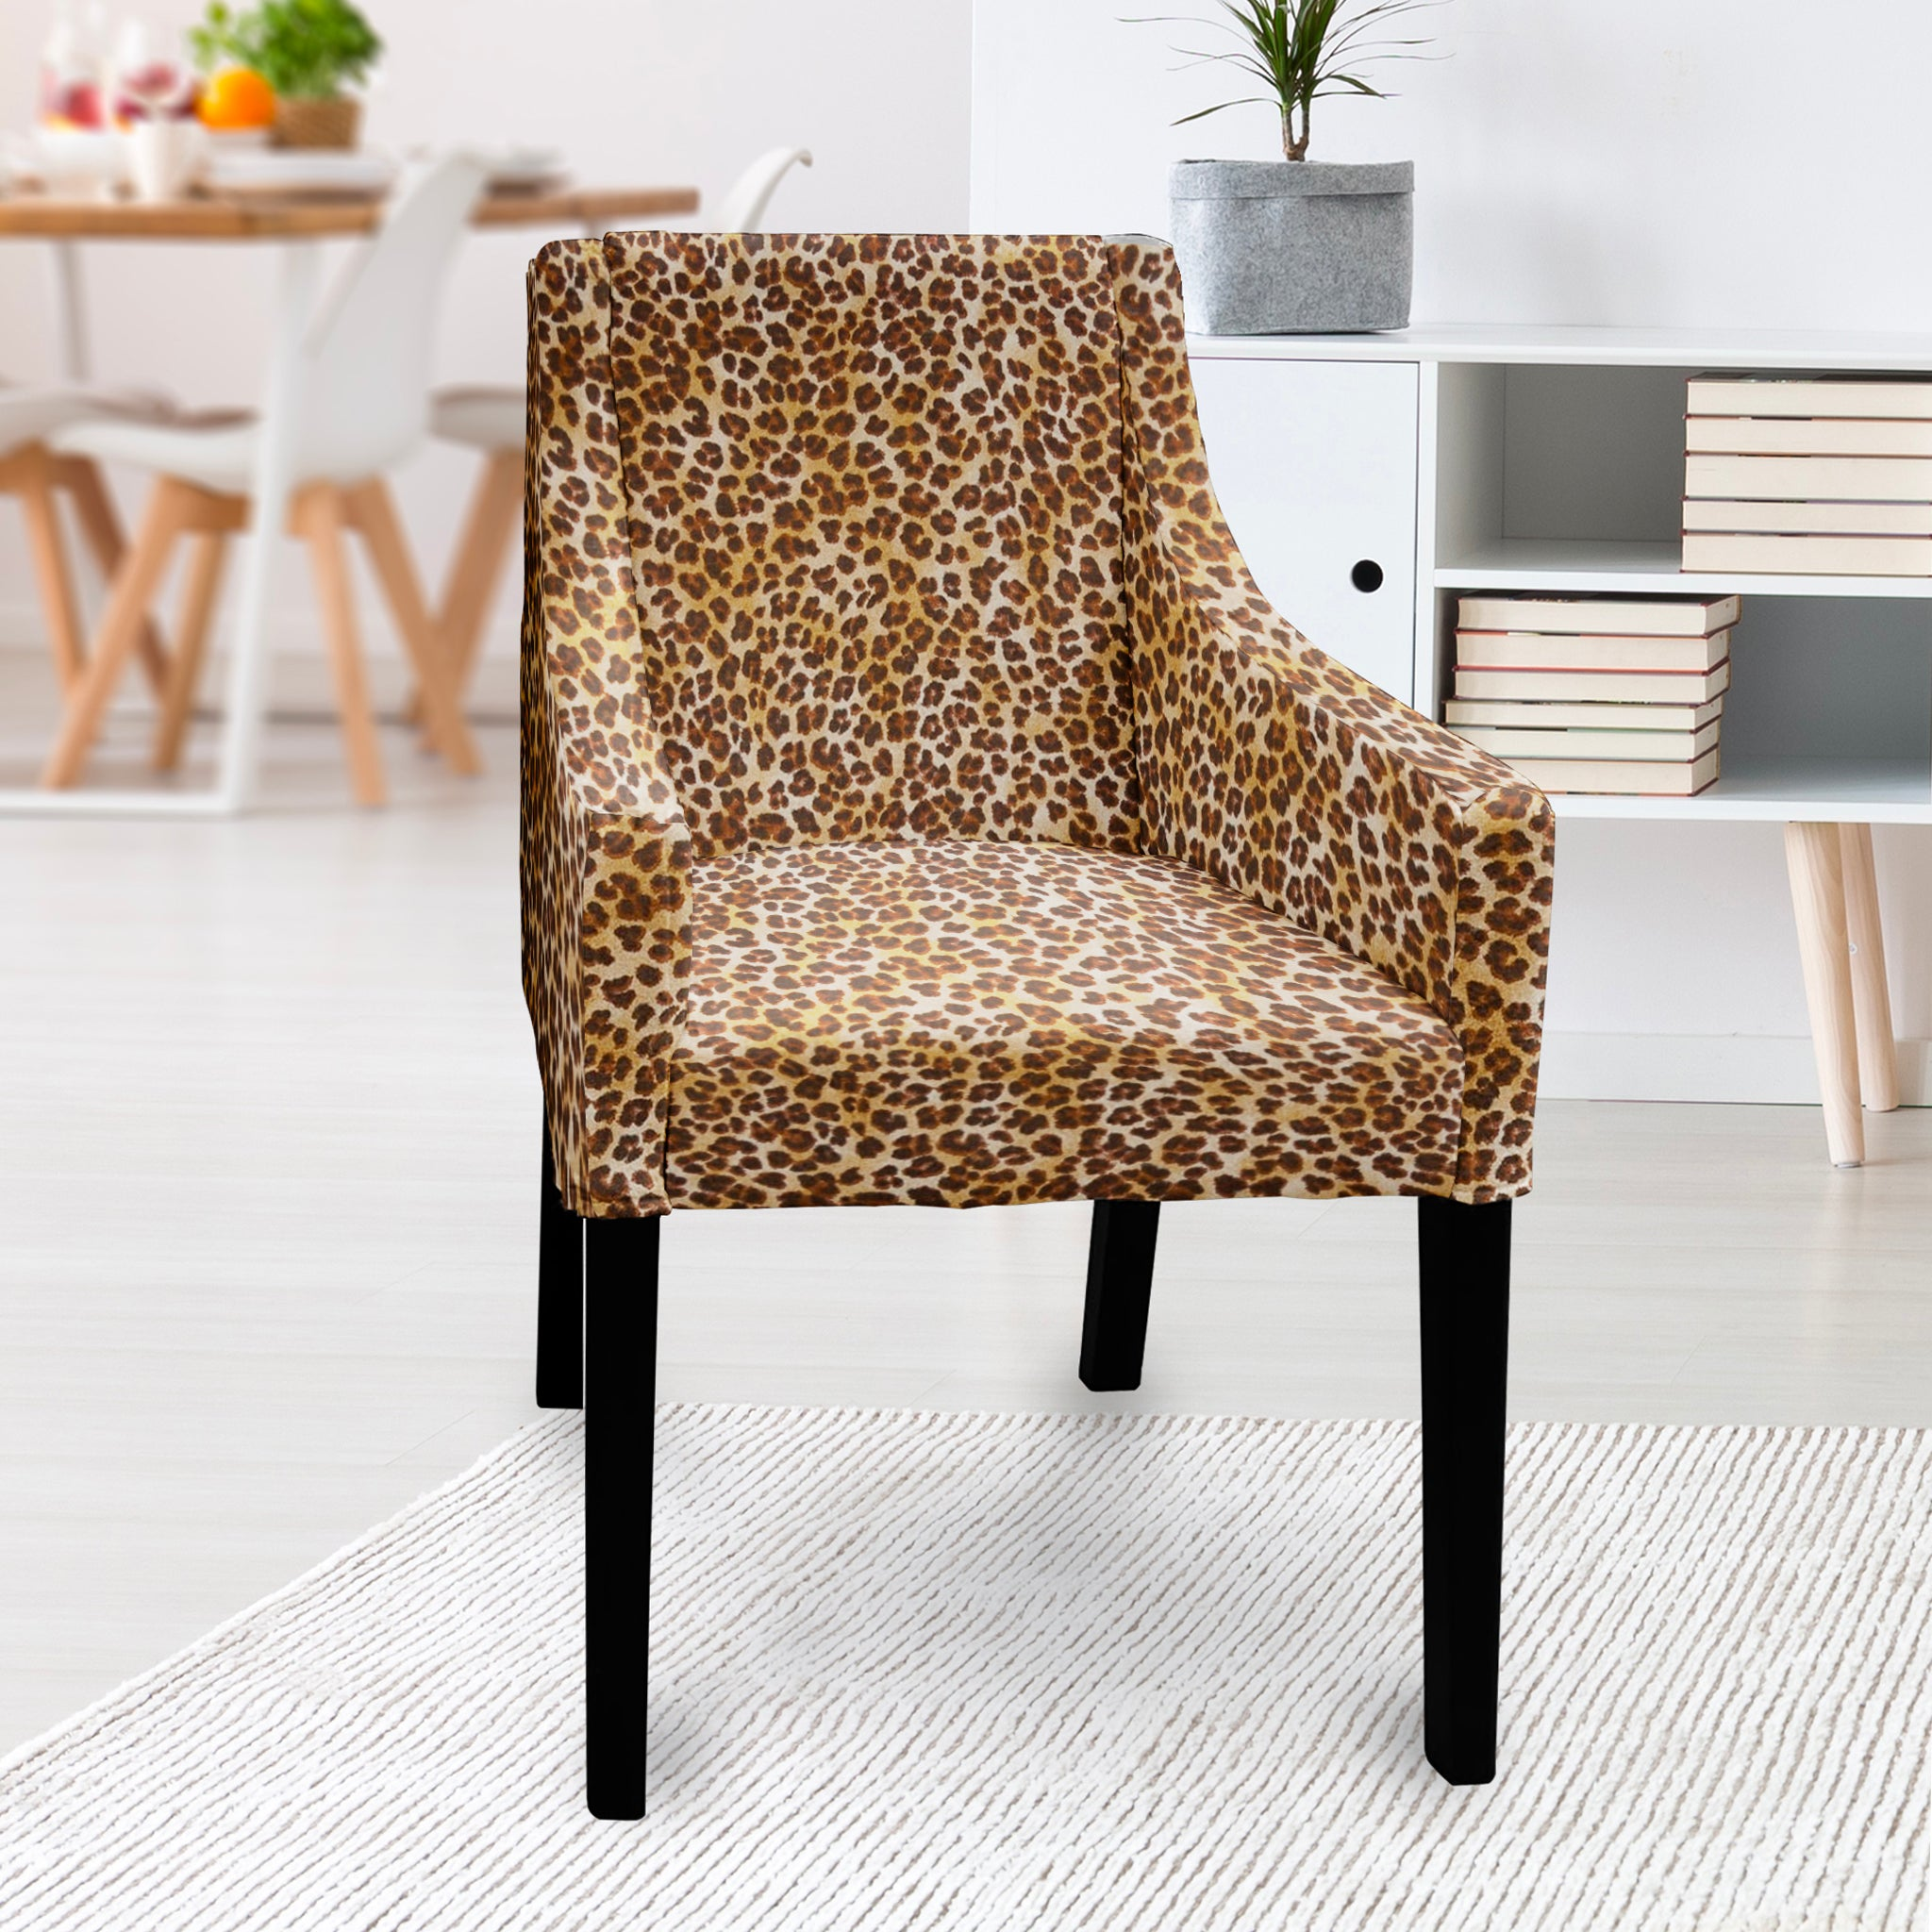 Picture of: Ikea Sakarias Dining Chair Slipcover Brown Cheetah Leopard Animal Print Affordable Designer Custom Handmade Trendy Fashionable Locally Made High Quality